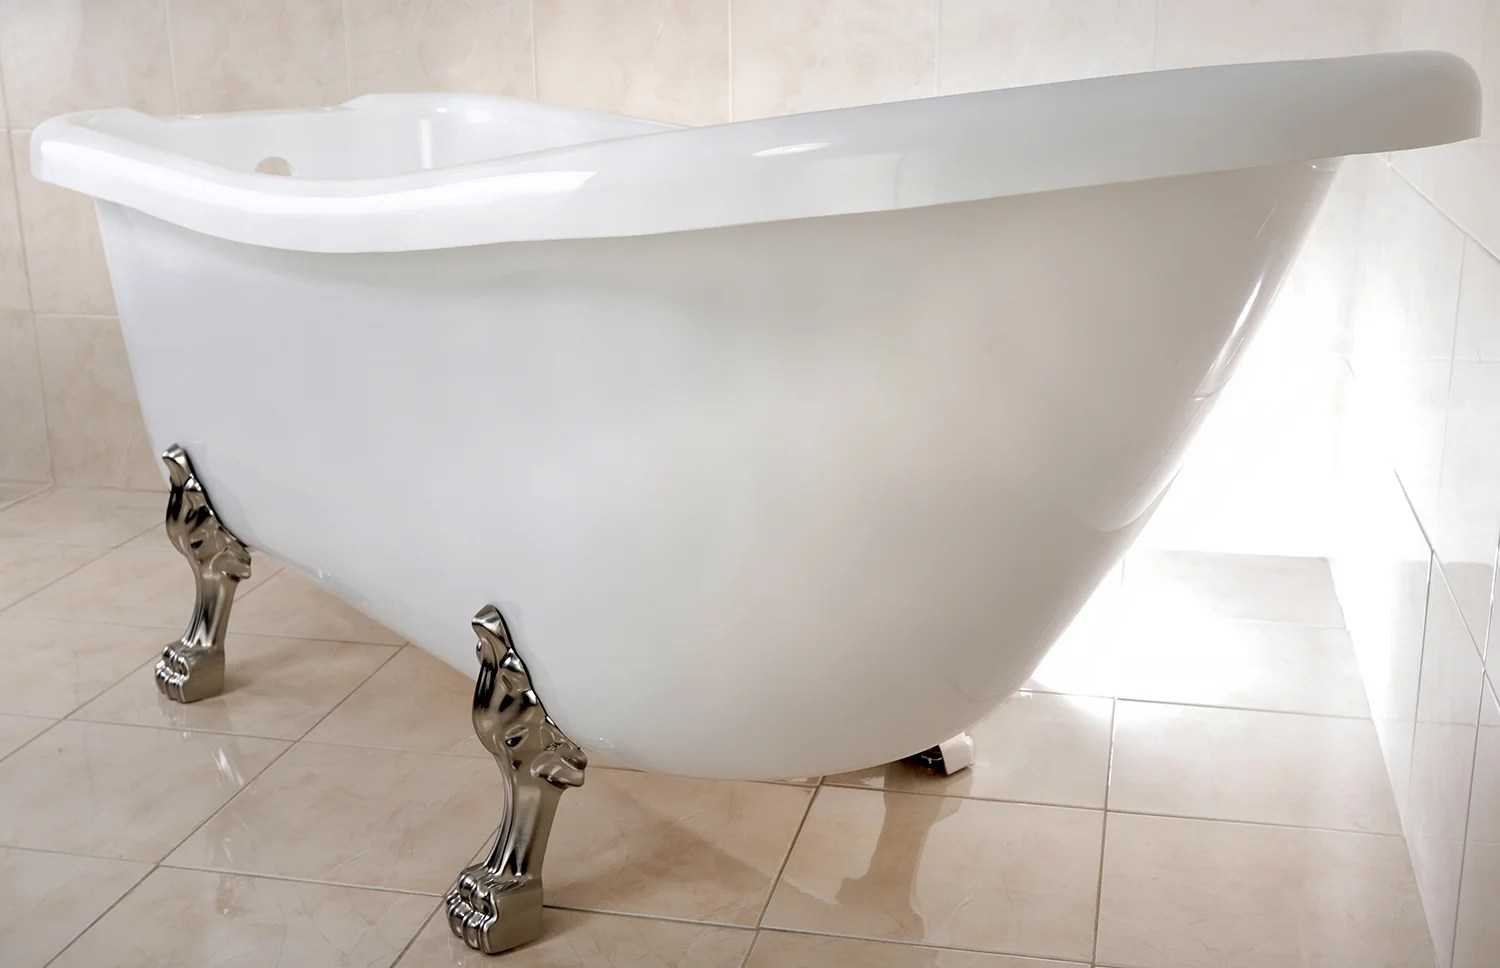 Tips For Choosing The Right Clawfoot Tub To Suit Your